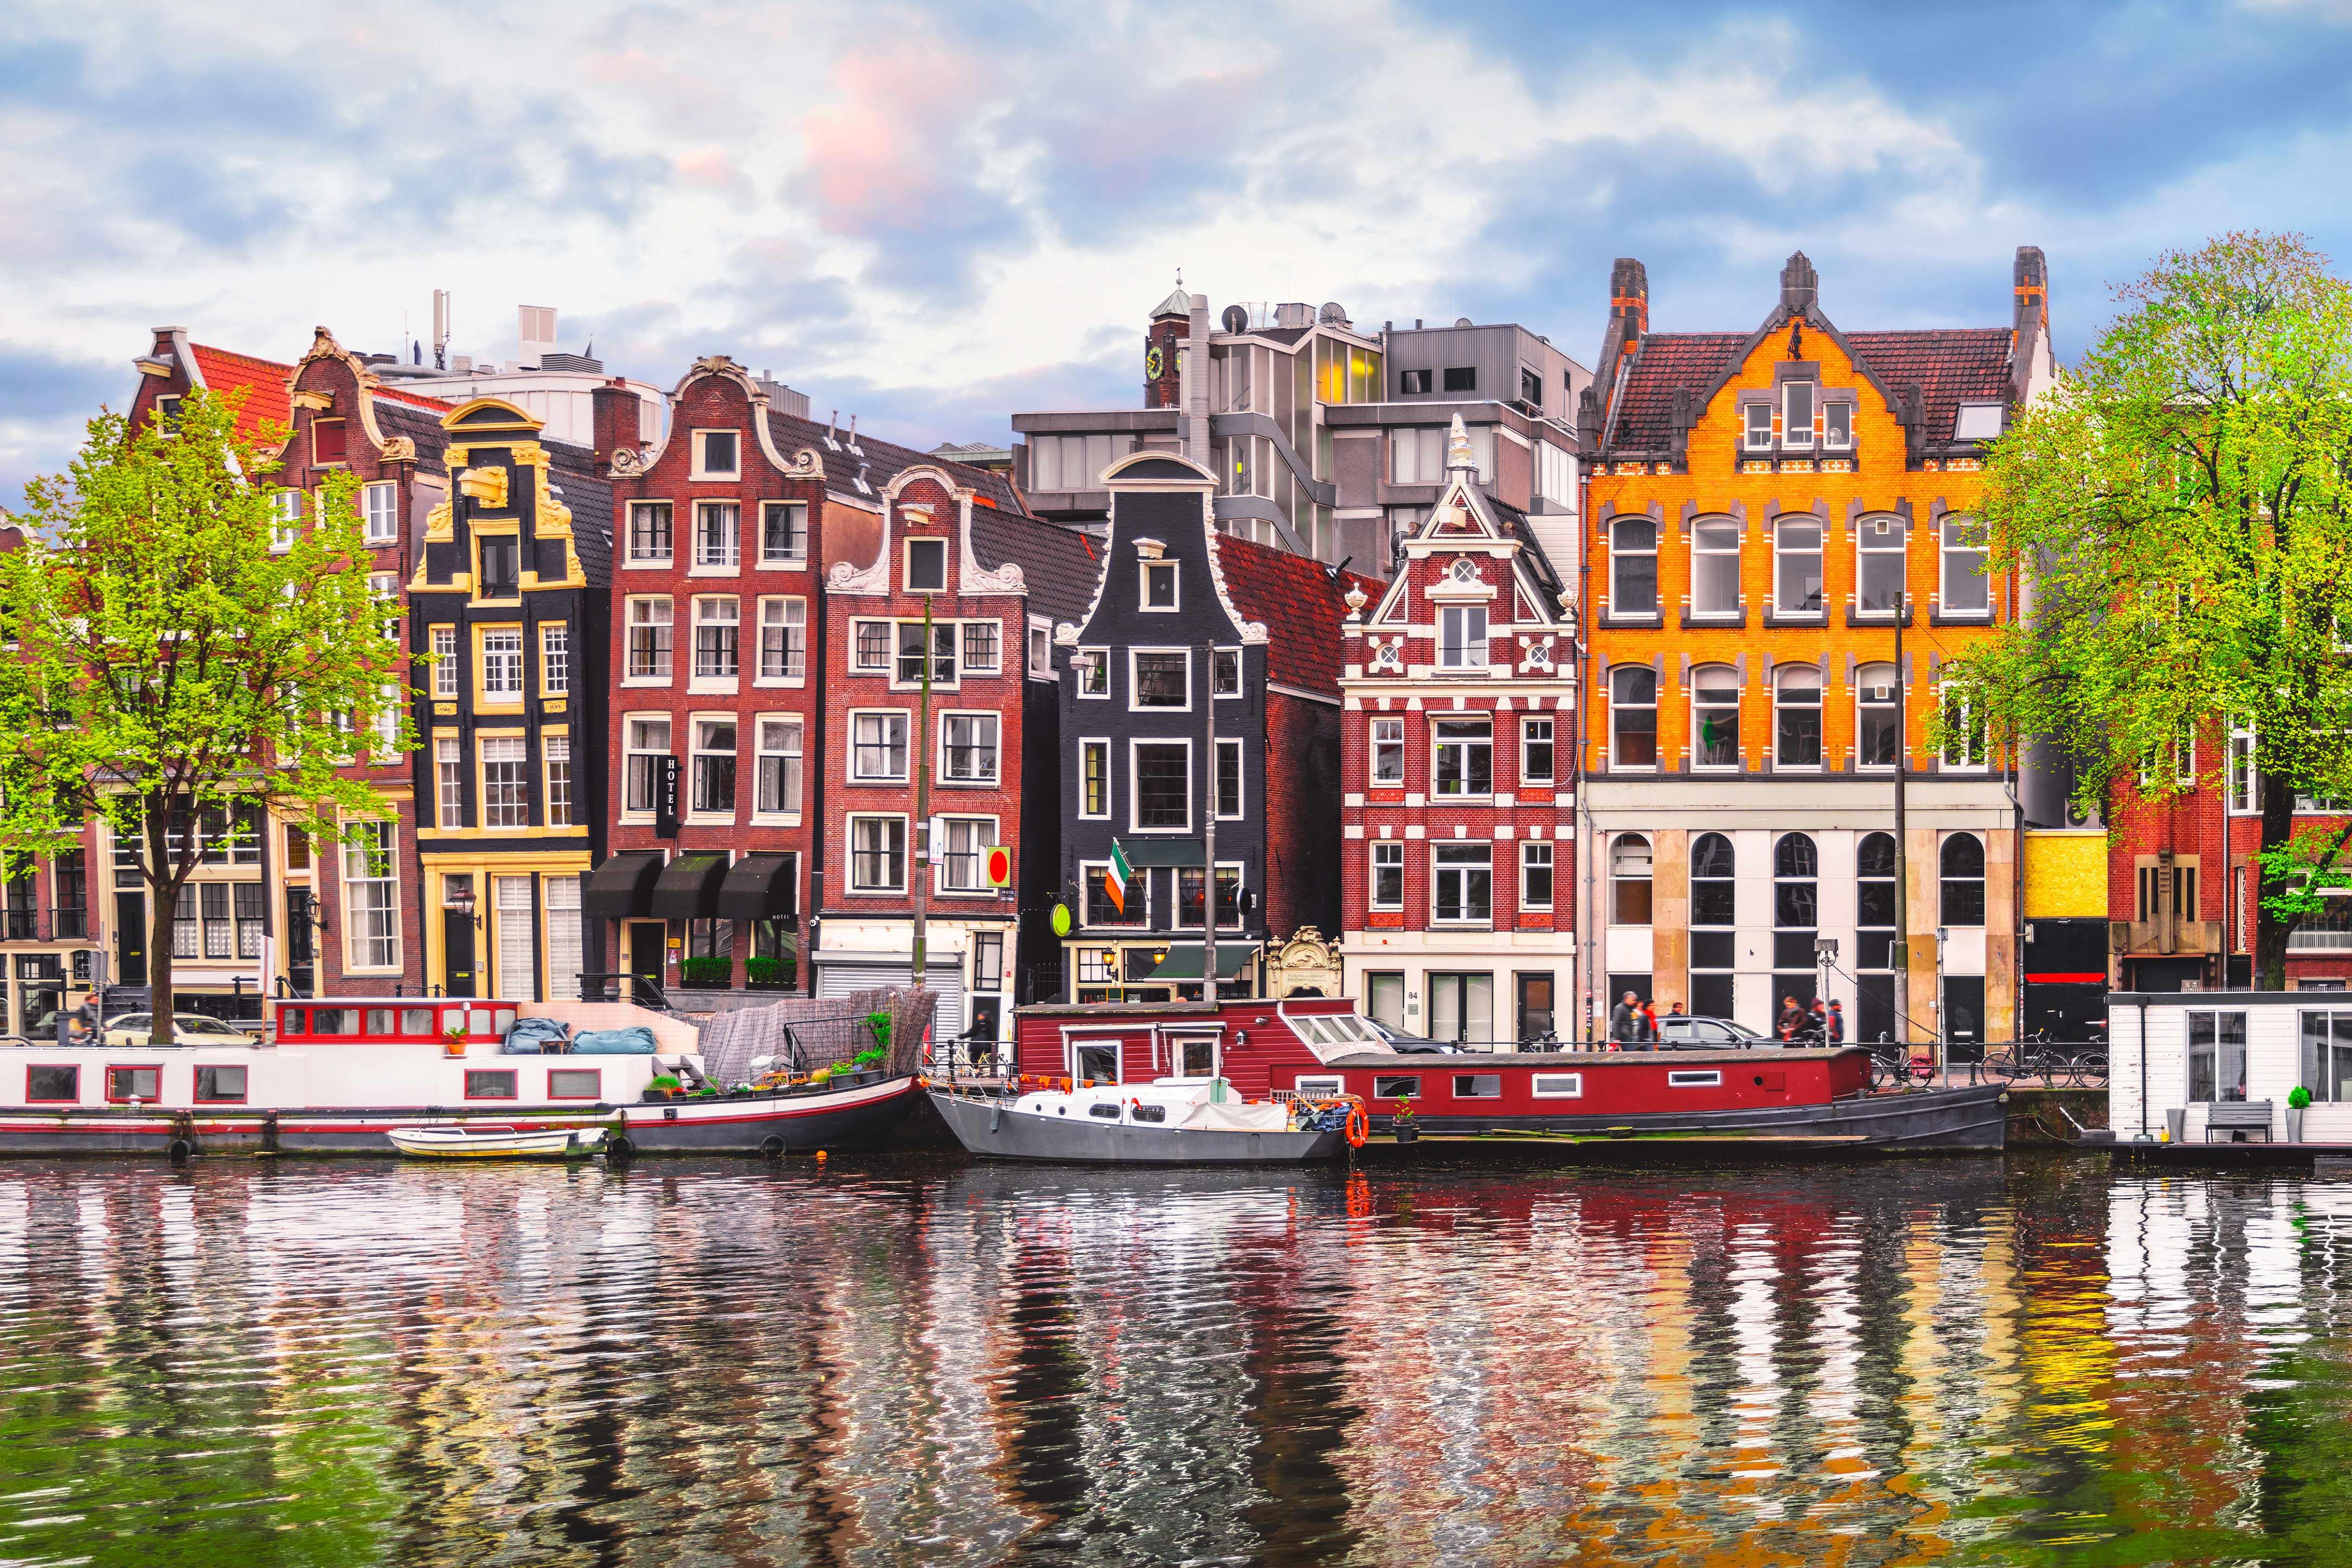 Visit historic cities and quaint canals with Netherlands cruises